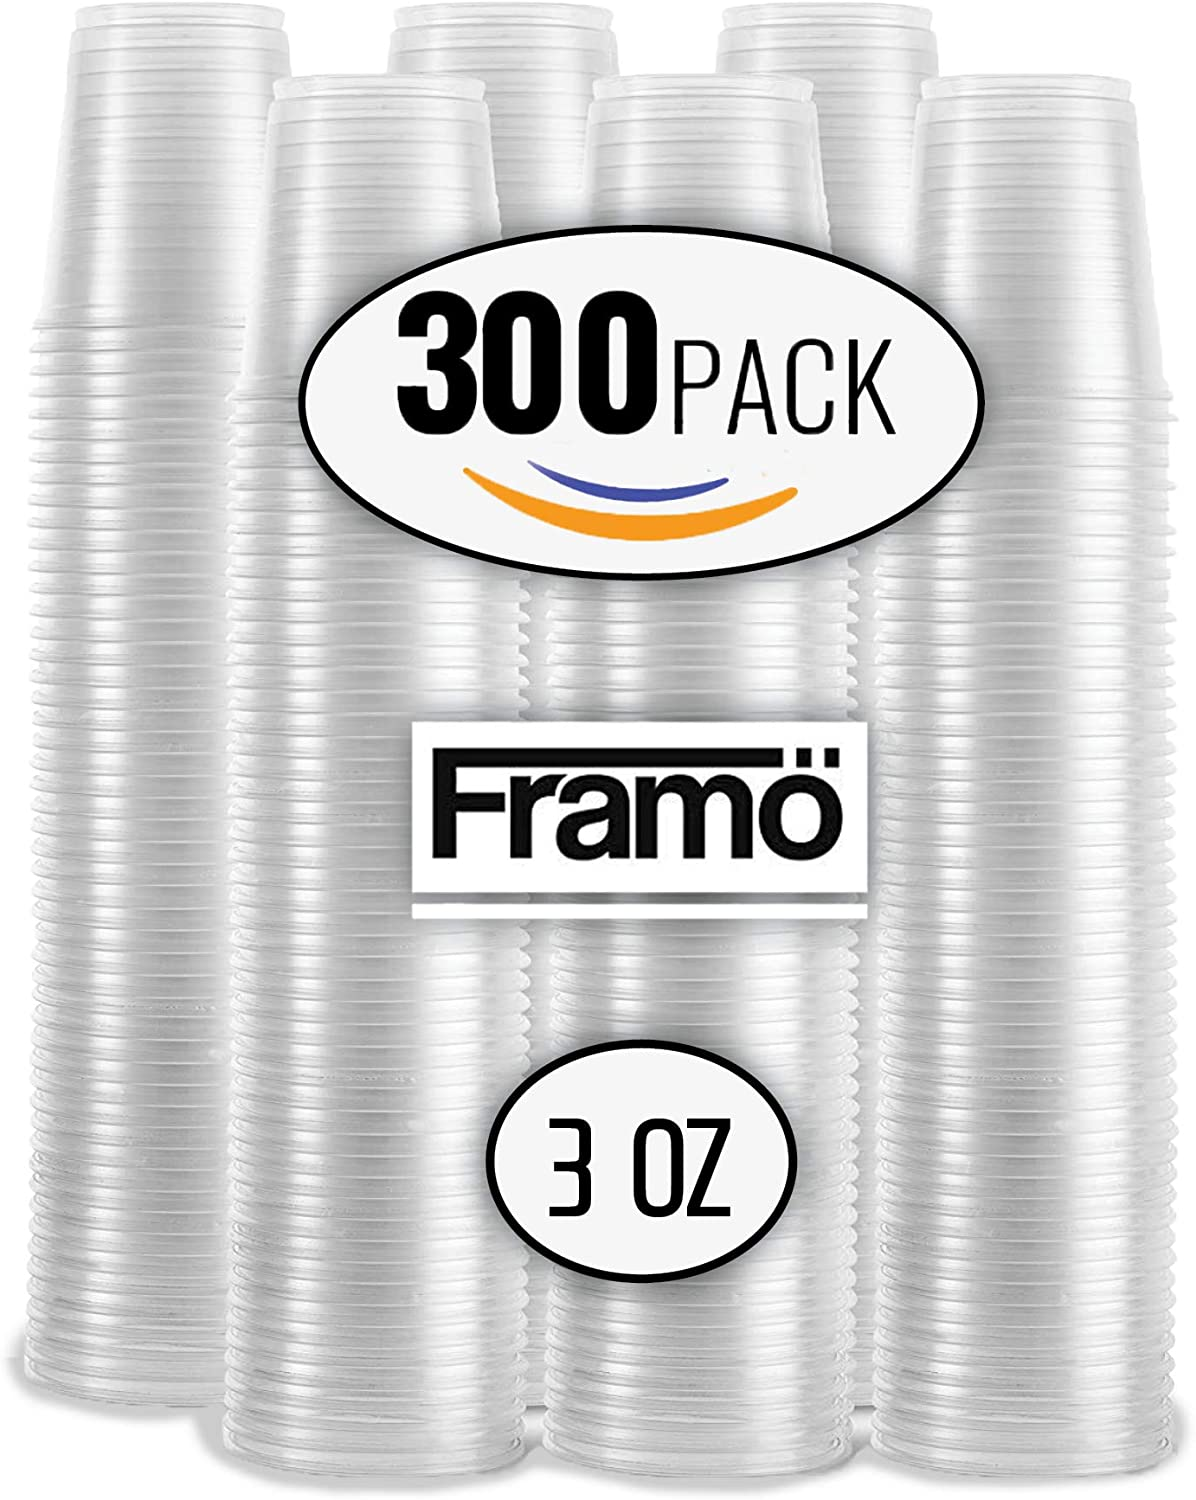 3 Oz Clear Plastic Cups by Framo, For Any Occasion, BPA-Free Disposable Transparent Ice Tea, Juice, Soda, and Coffee Glasses for Party, Picnic, BBQ, Travel, and Events, (300 count)